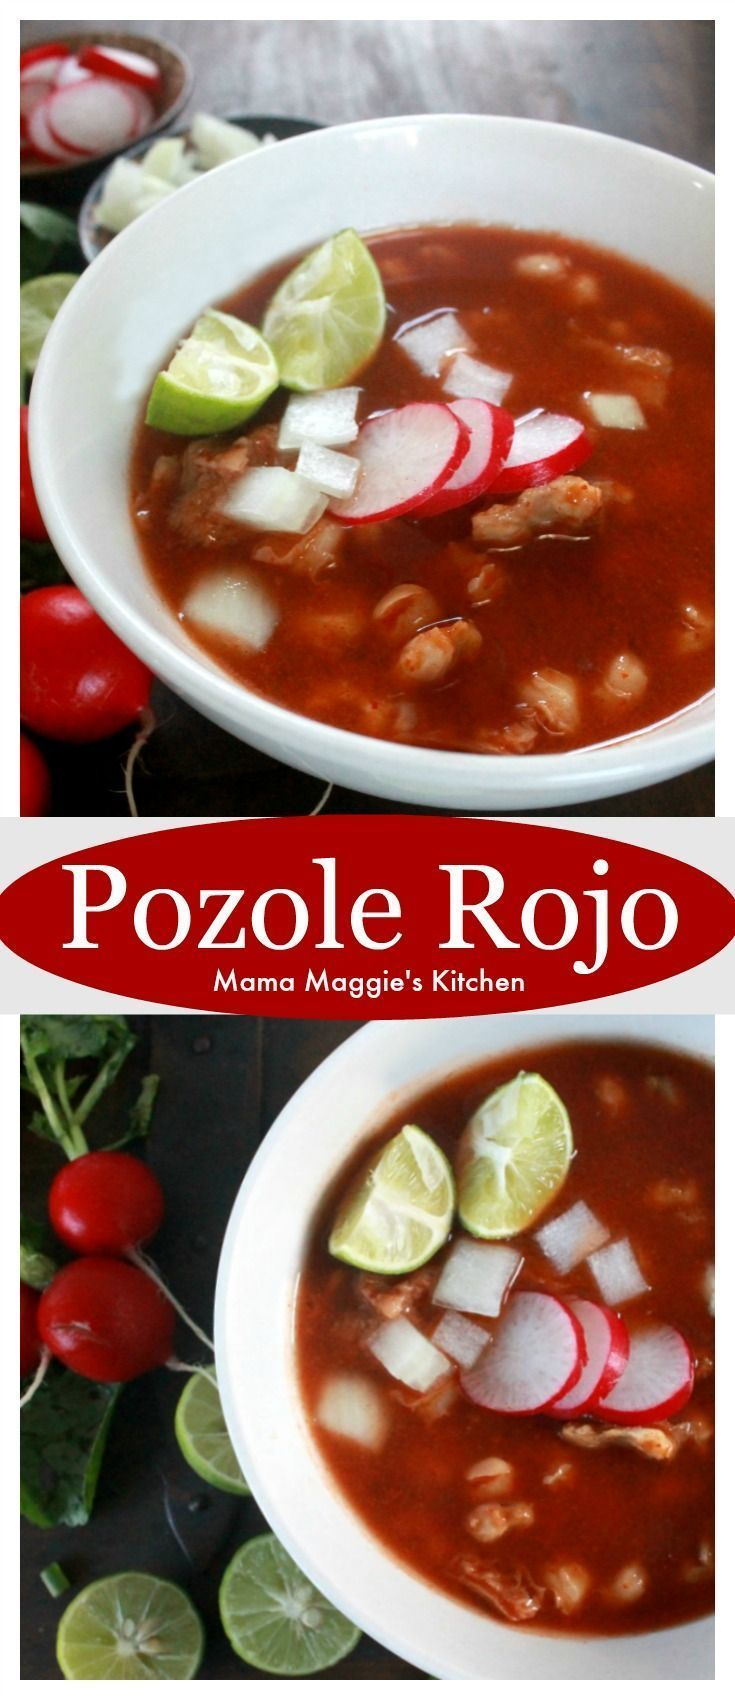 Pozole Rojo is a traditional Mexican stew that is hearty and delicious. By Mama Maggies Kitchen - Sponsored